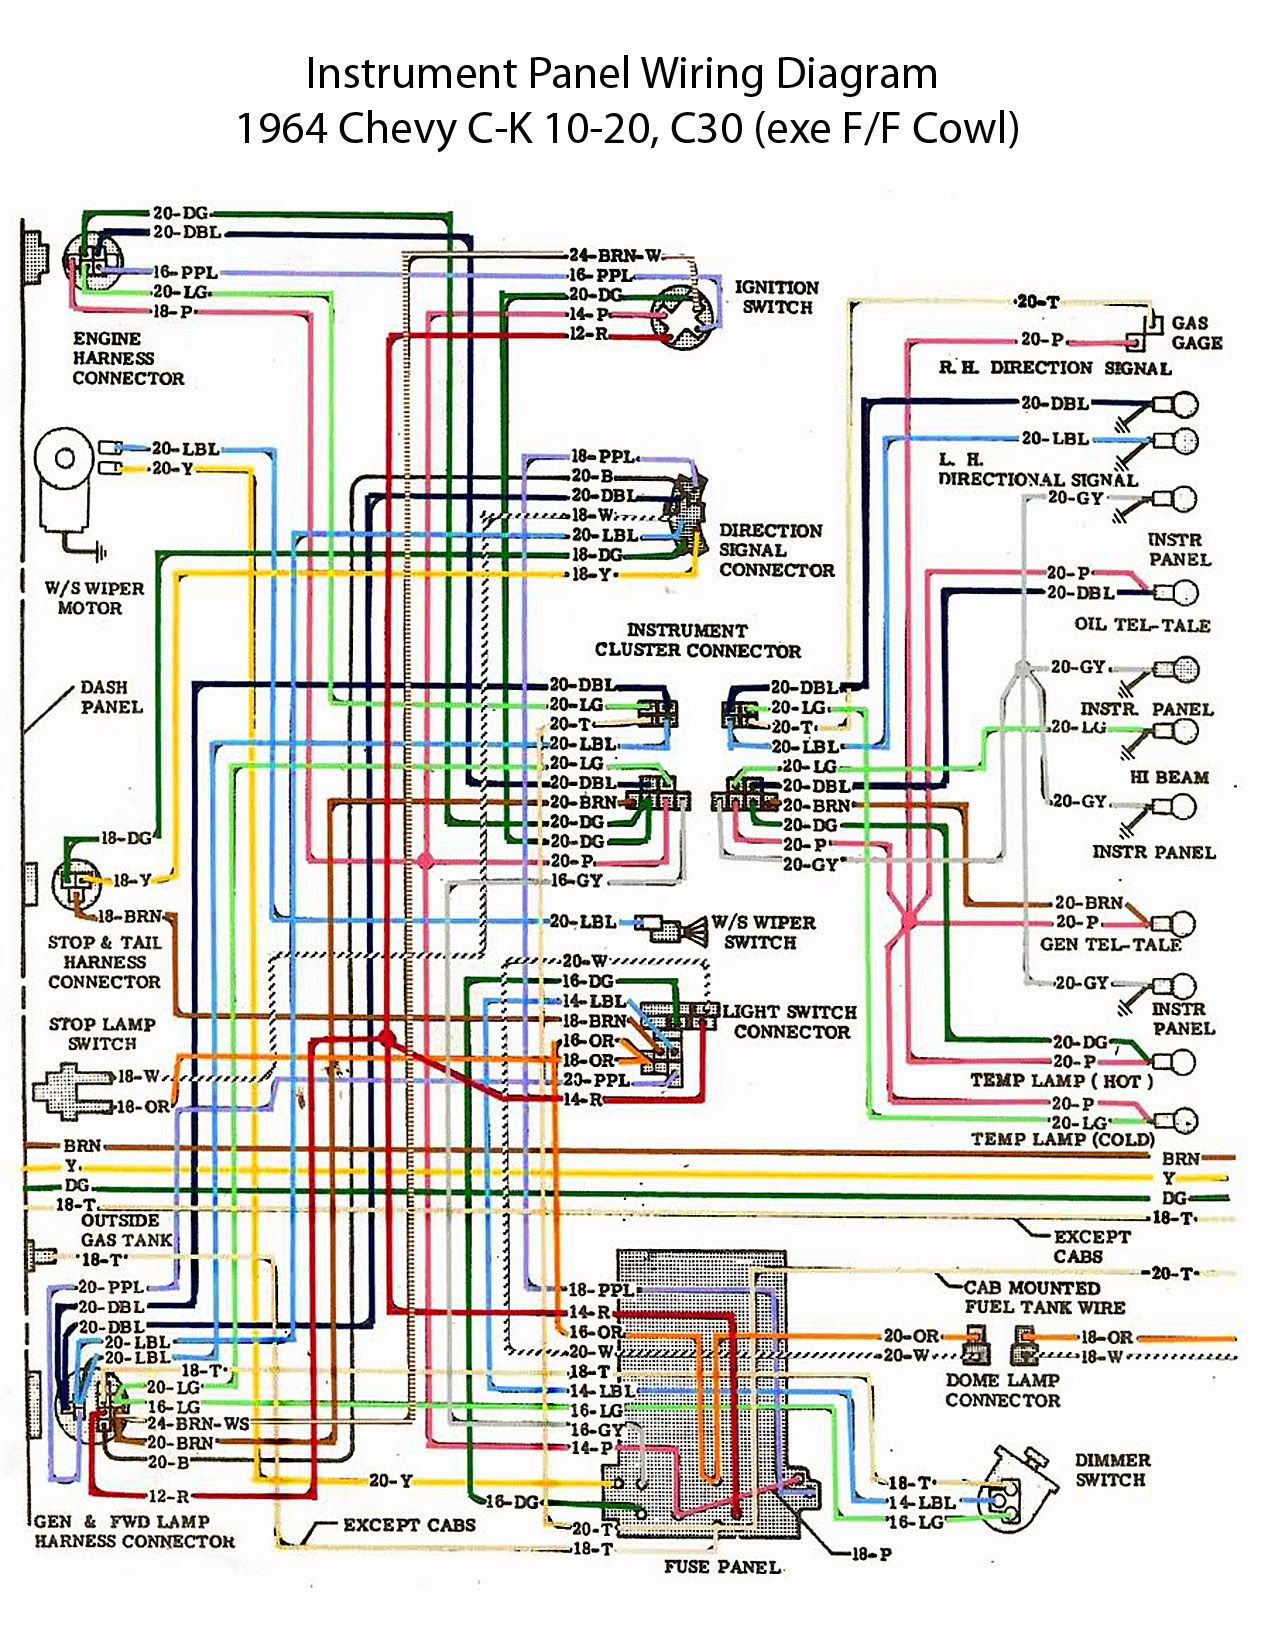 Bat Wiring Diagrams on pinout diagrams, led circuit diagrams, series and parallel circuits diagrams, sincgars radio configurations diagrams, switch diagrams, friendship bracelet diagrams, motor diagrams, engine diagrams, honda motorcycle repair diagrams, troubleshooting diagrams, internet of things diagrams, gmc fuse box diagrams, lighting diagrams, smart car diagrams, battery diagrams, hvac diagrams, electrical diagrams, electronic circuit diagrams, transformer diagrams,